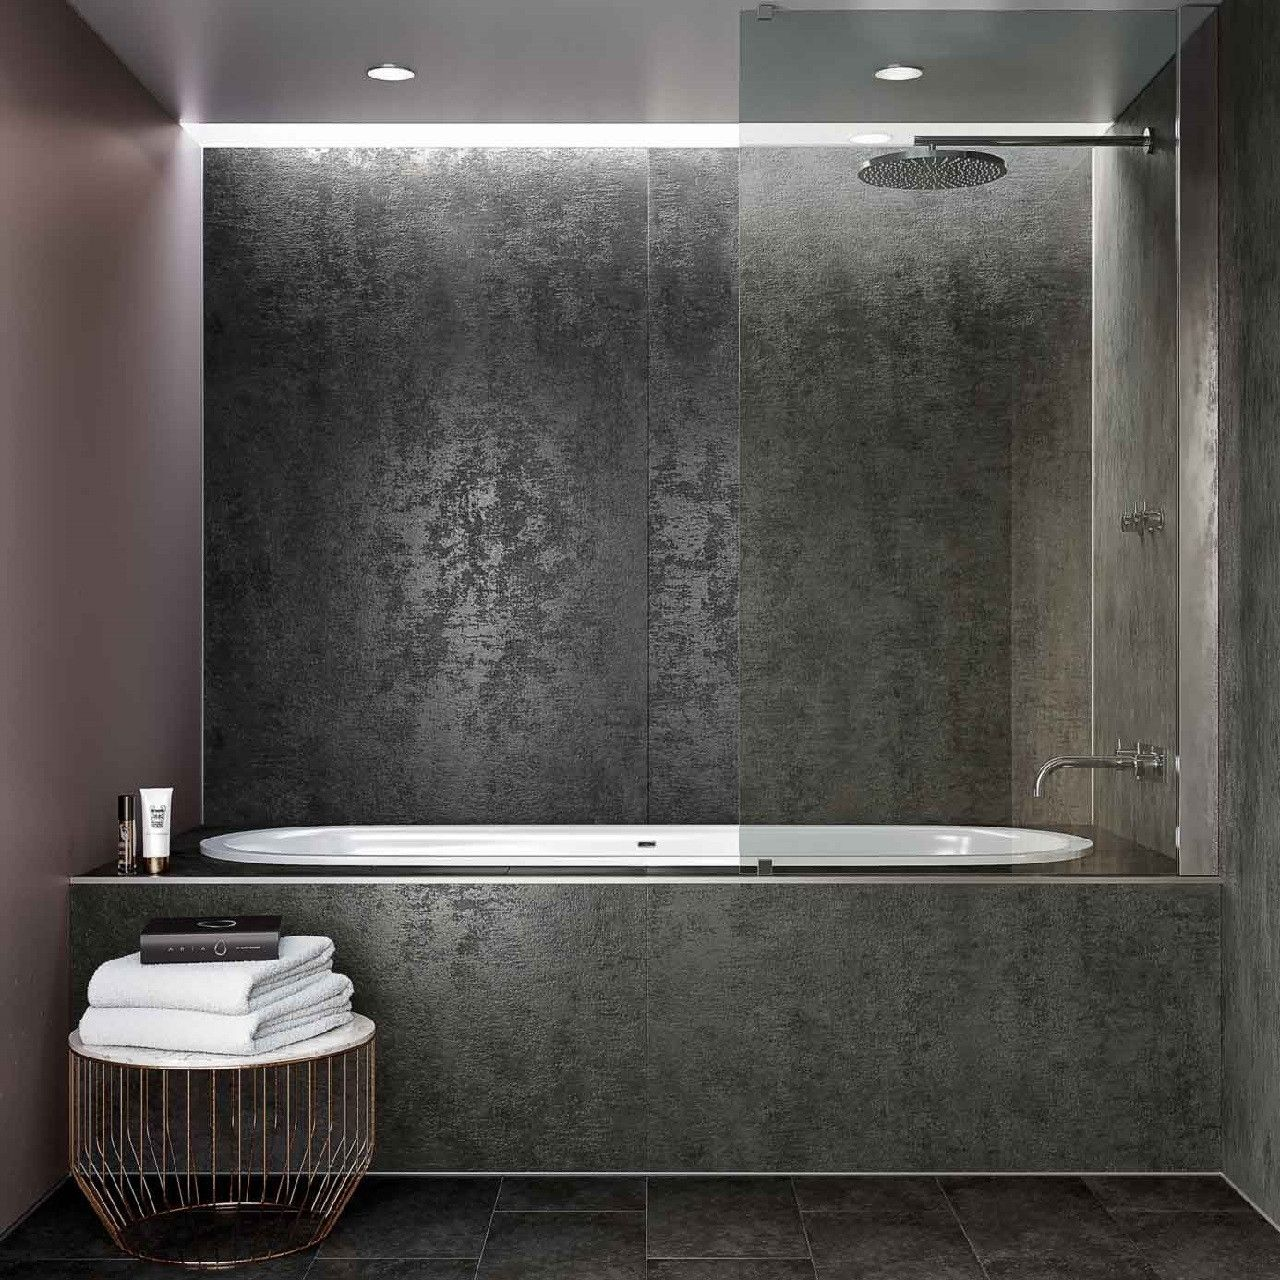 Multipanel Linda Barker Graphite Elements Unlipped Bathroom Wall Panel Bathroom Wall Panels Pvc Bathroom Wall Panels Simple Bathroom